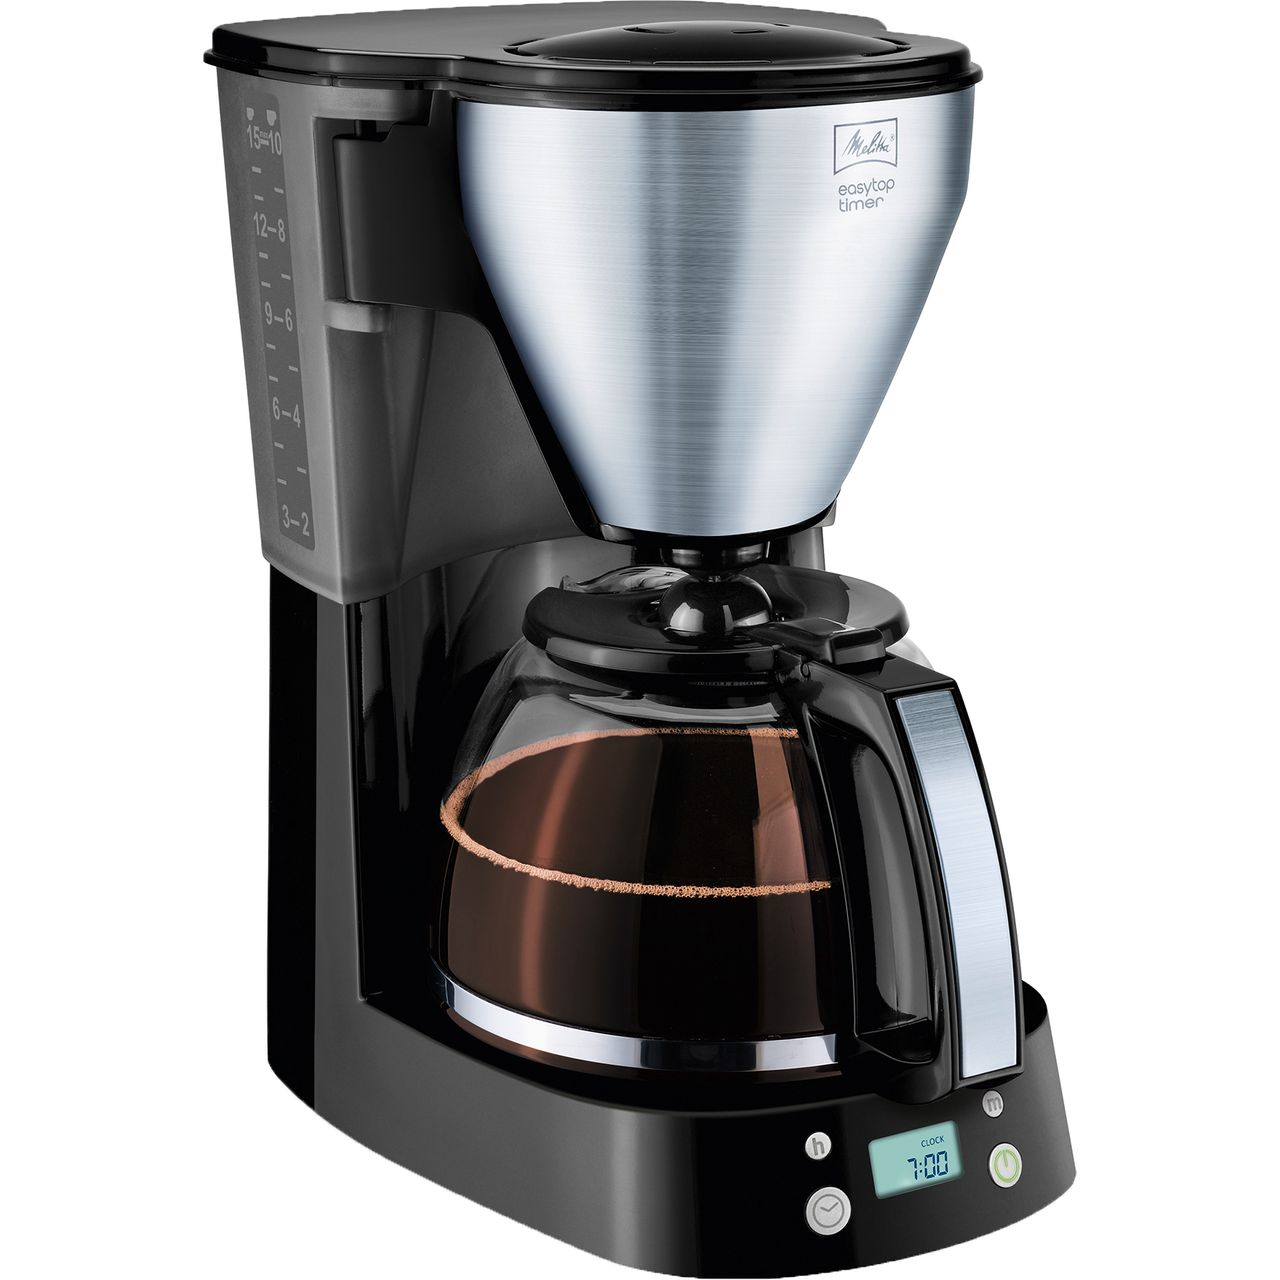 Melitta Easytop Timer 6758193 Filter Coffee Machine With Timer Black